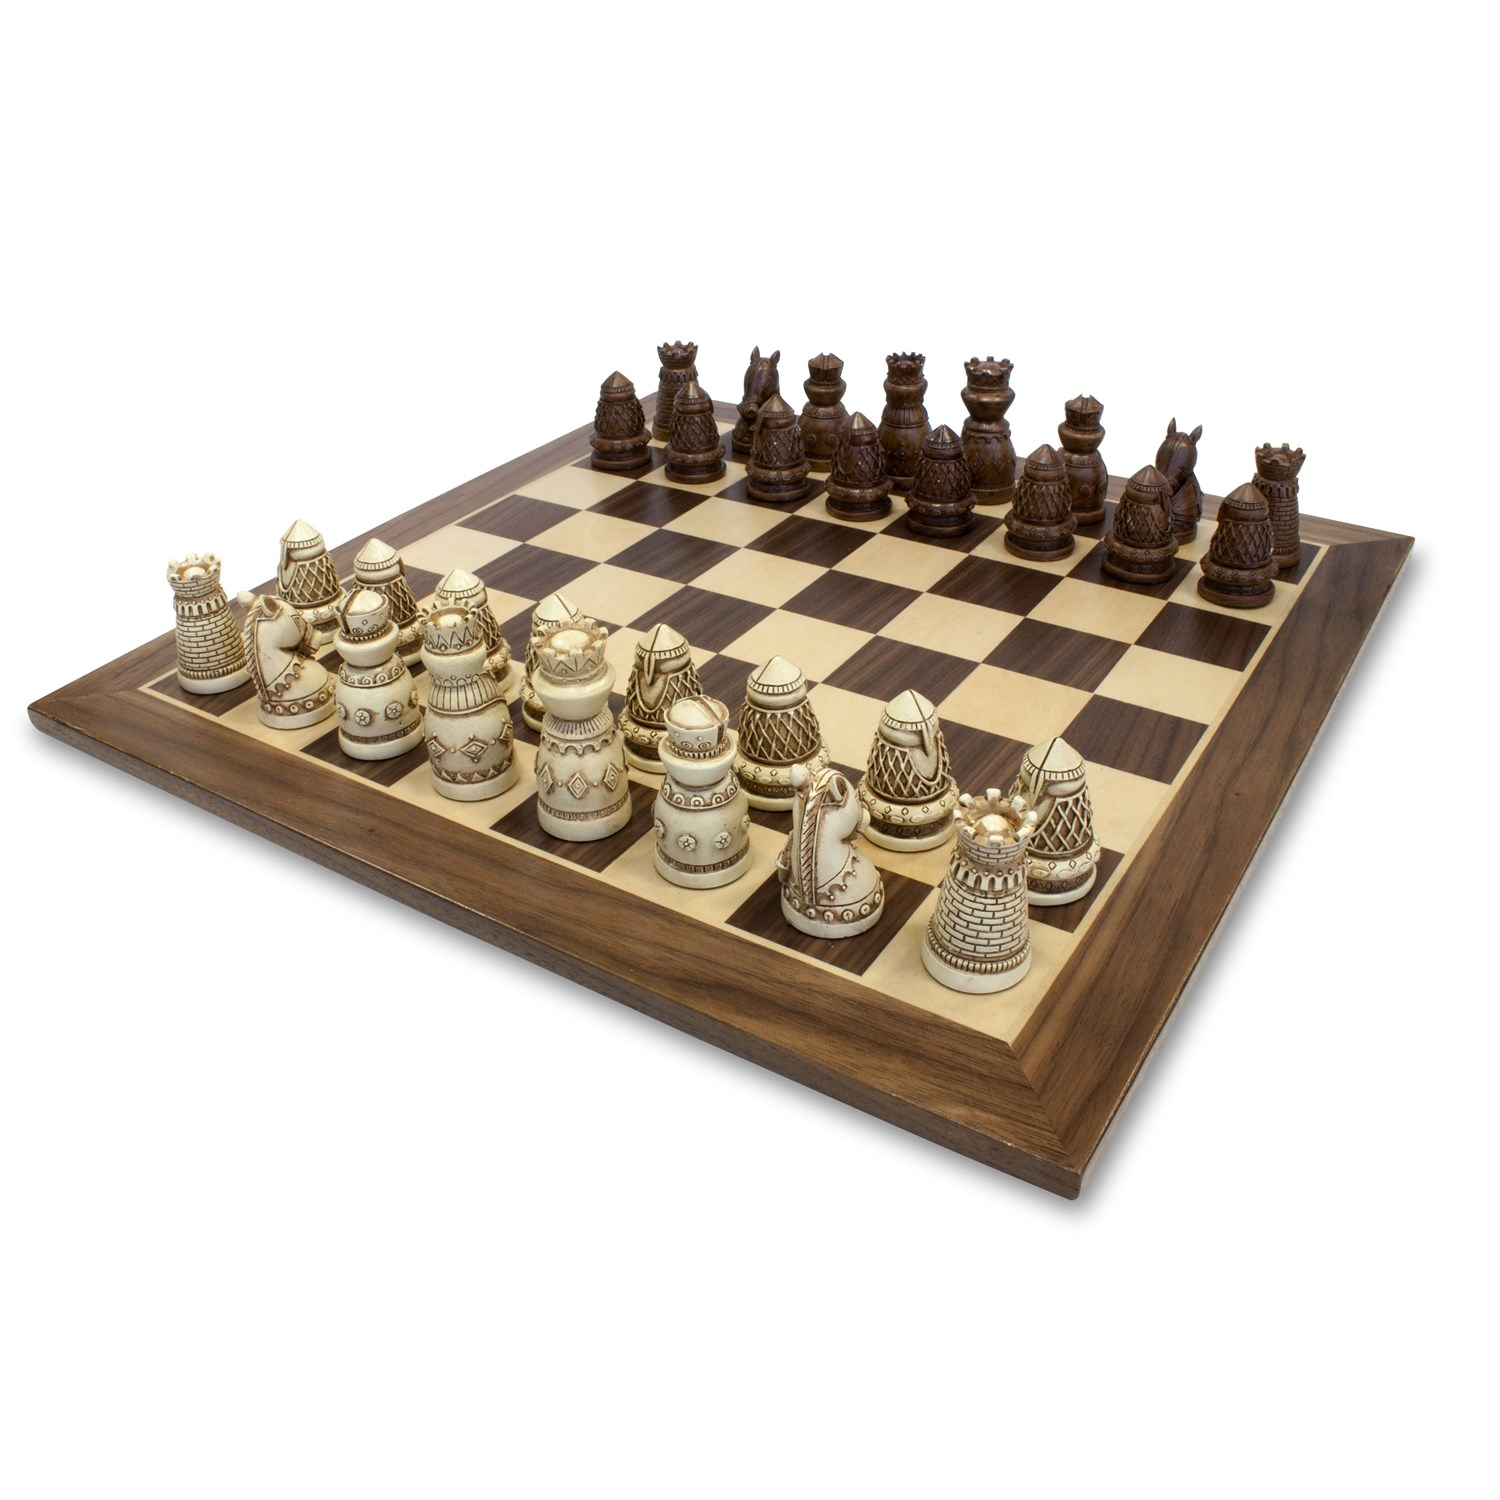 Medieval Chess Set Polystone Pieces With A Wooden Board